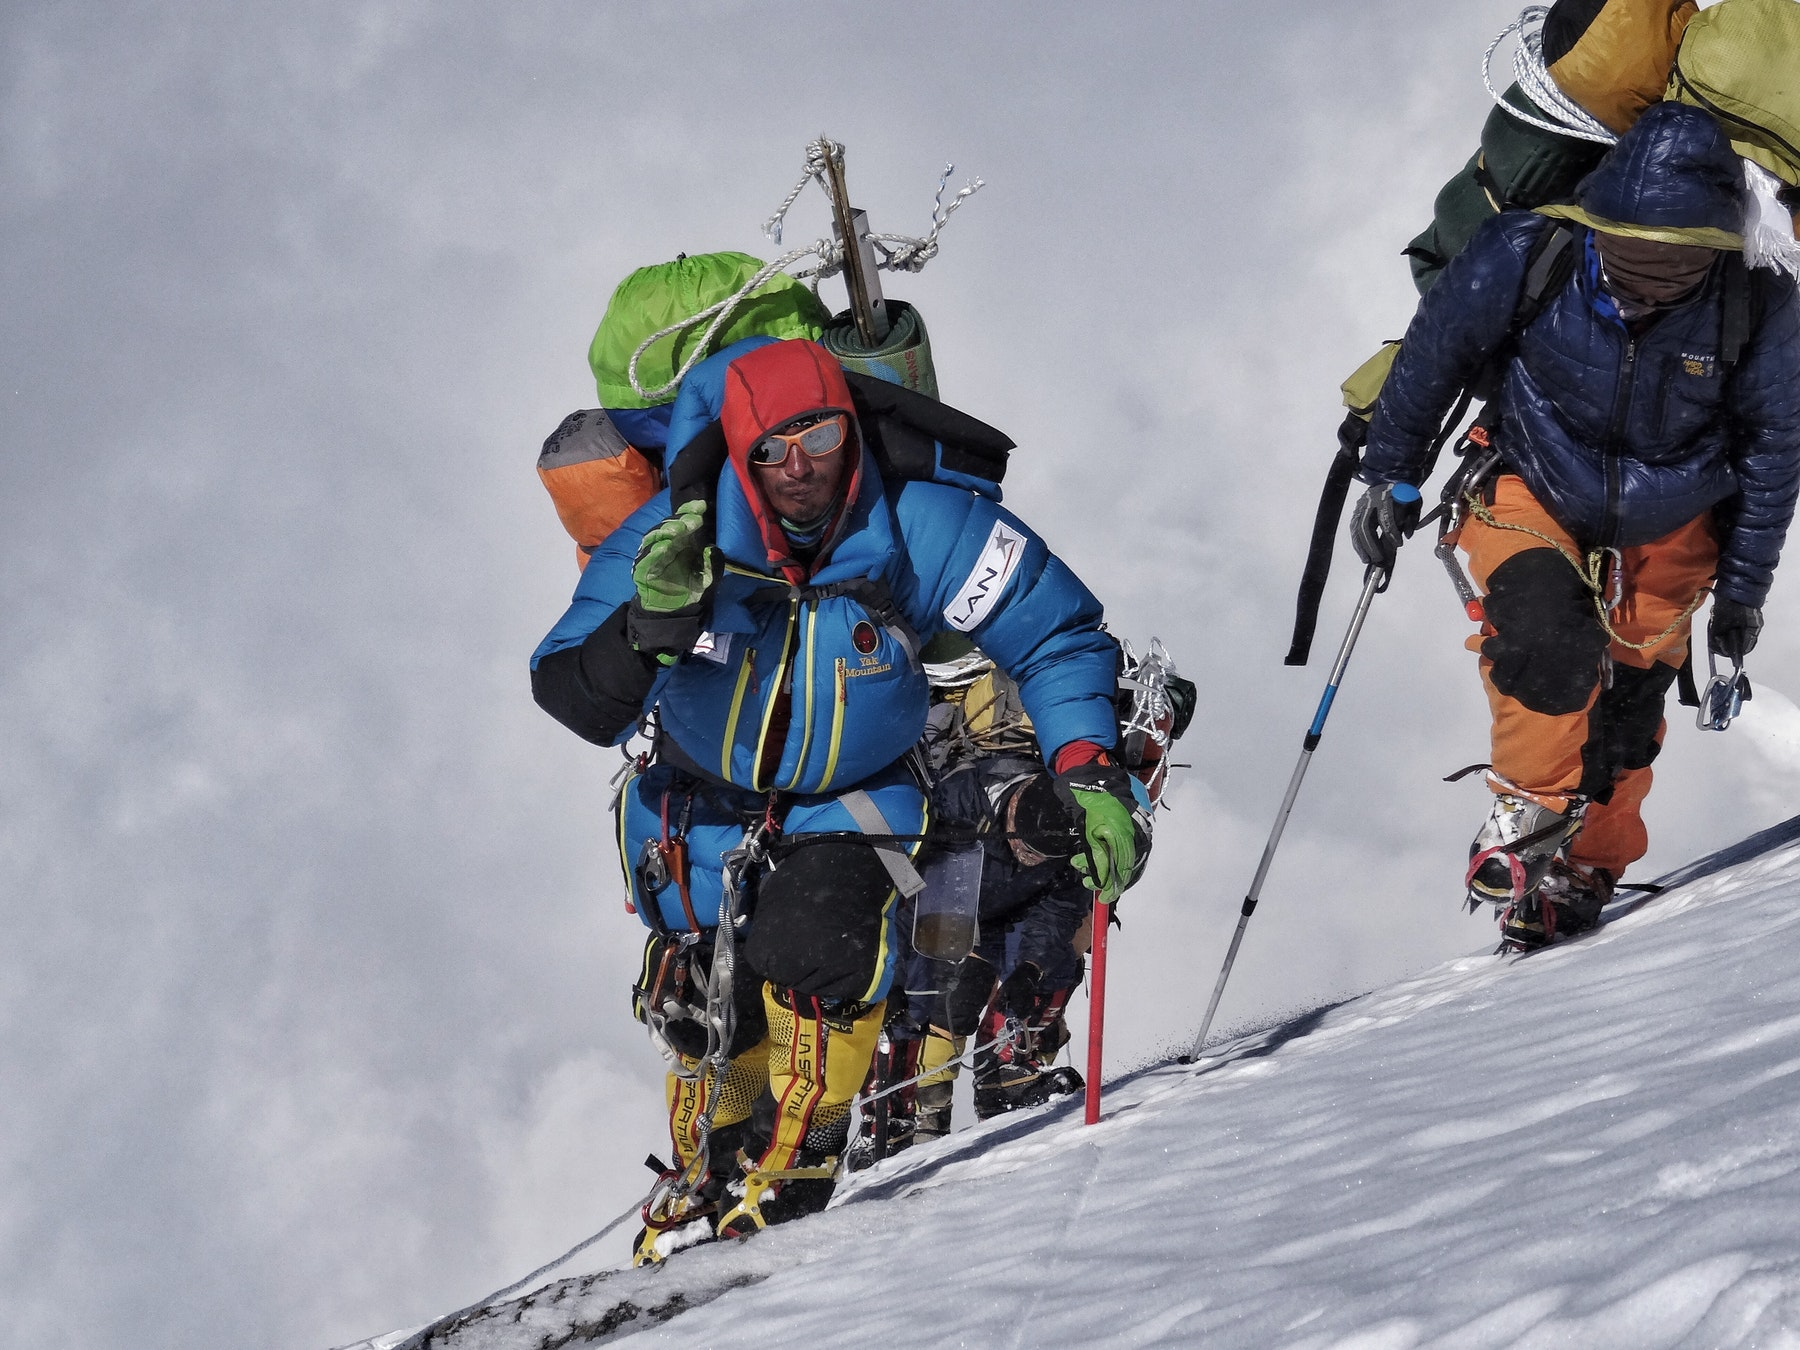 Climbers making their way to the summit